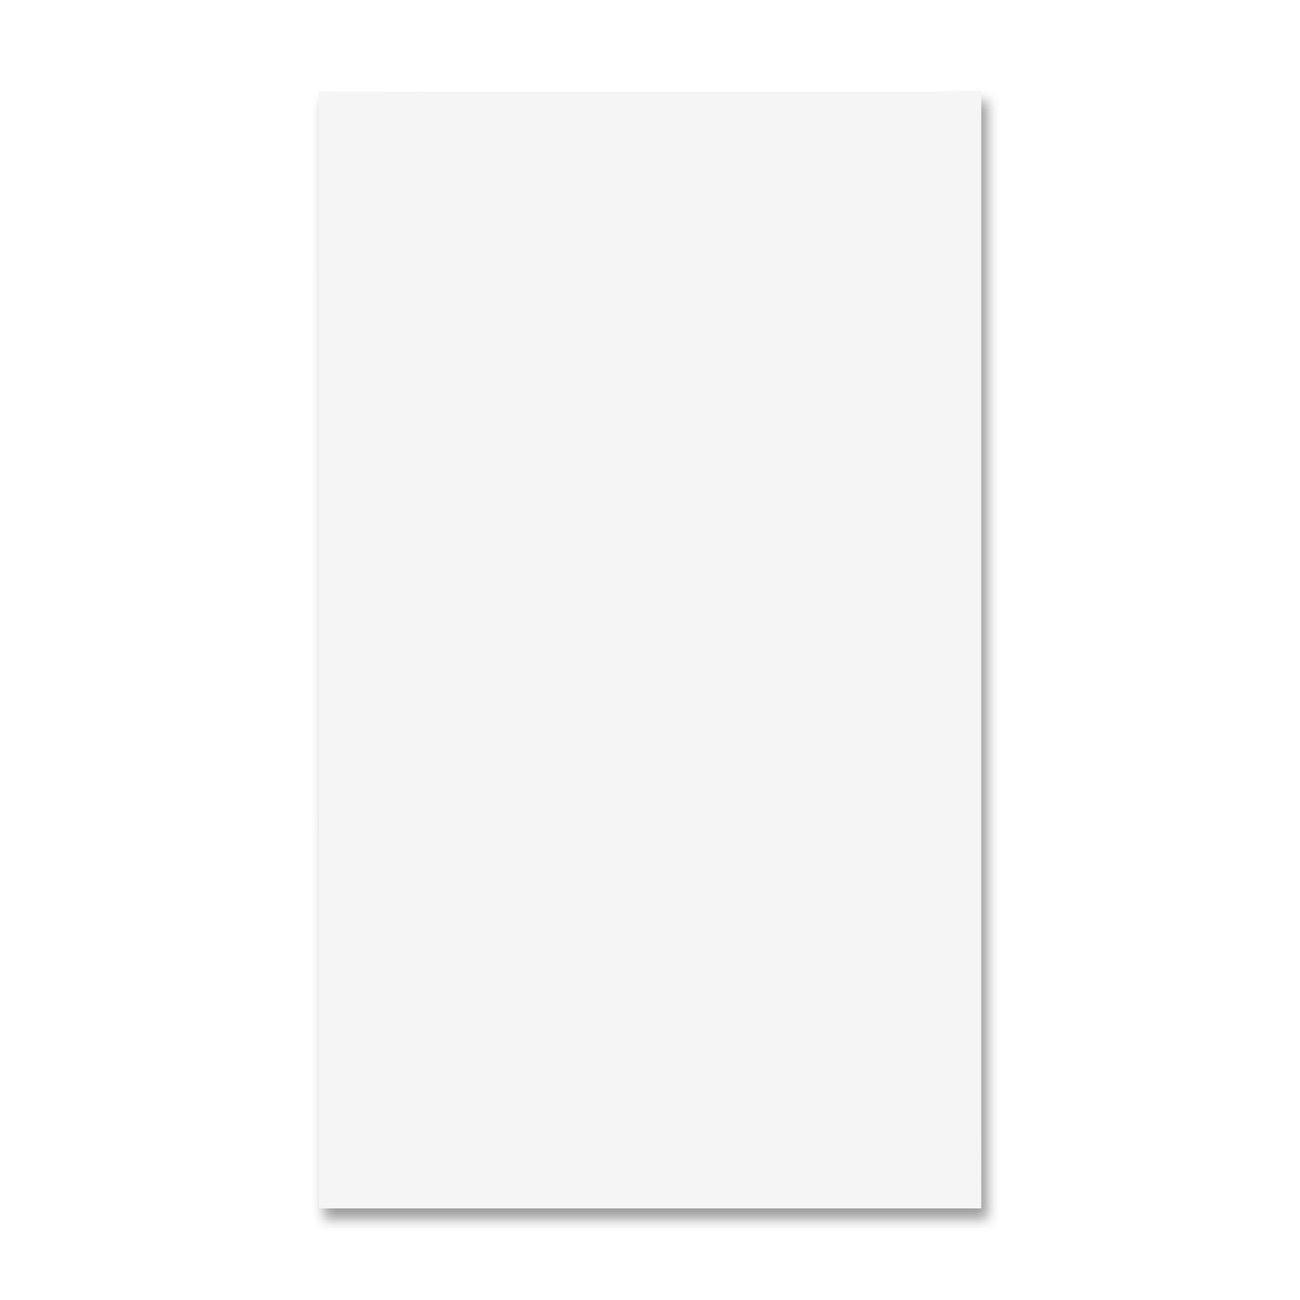 TOPS Memo Pads, 3'' x 5'', White Paper, 100 Sheets, 12 Pack (7820)